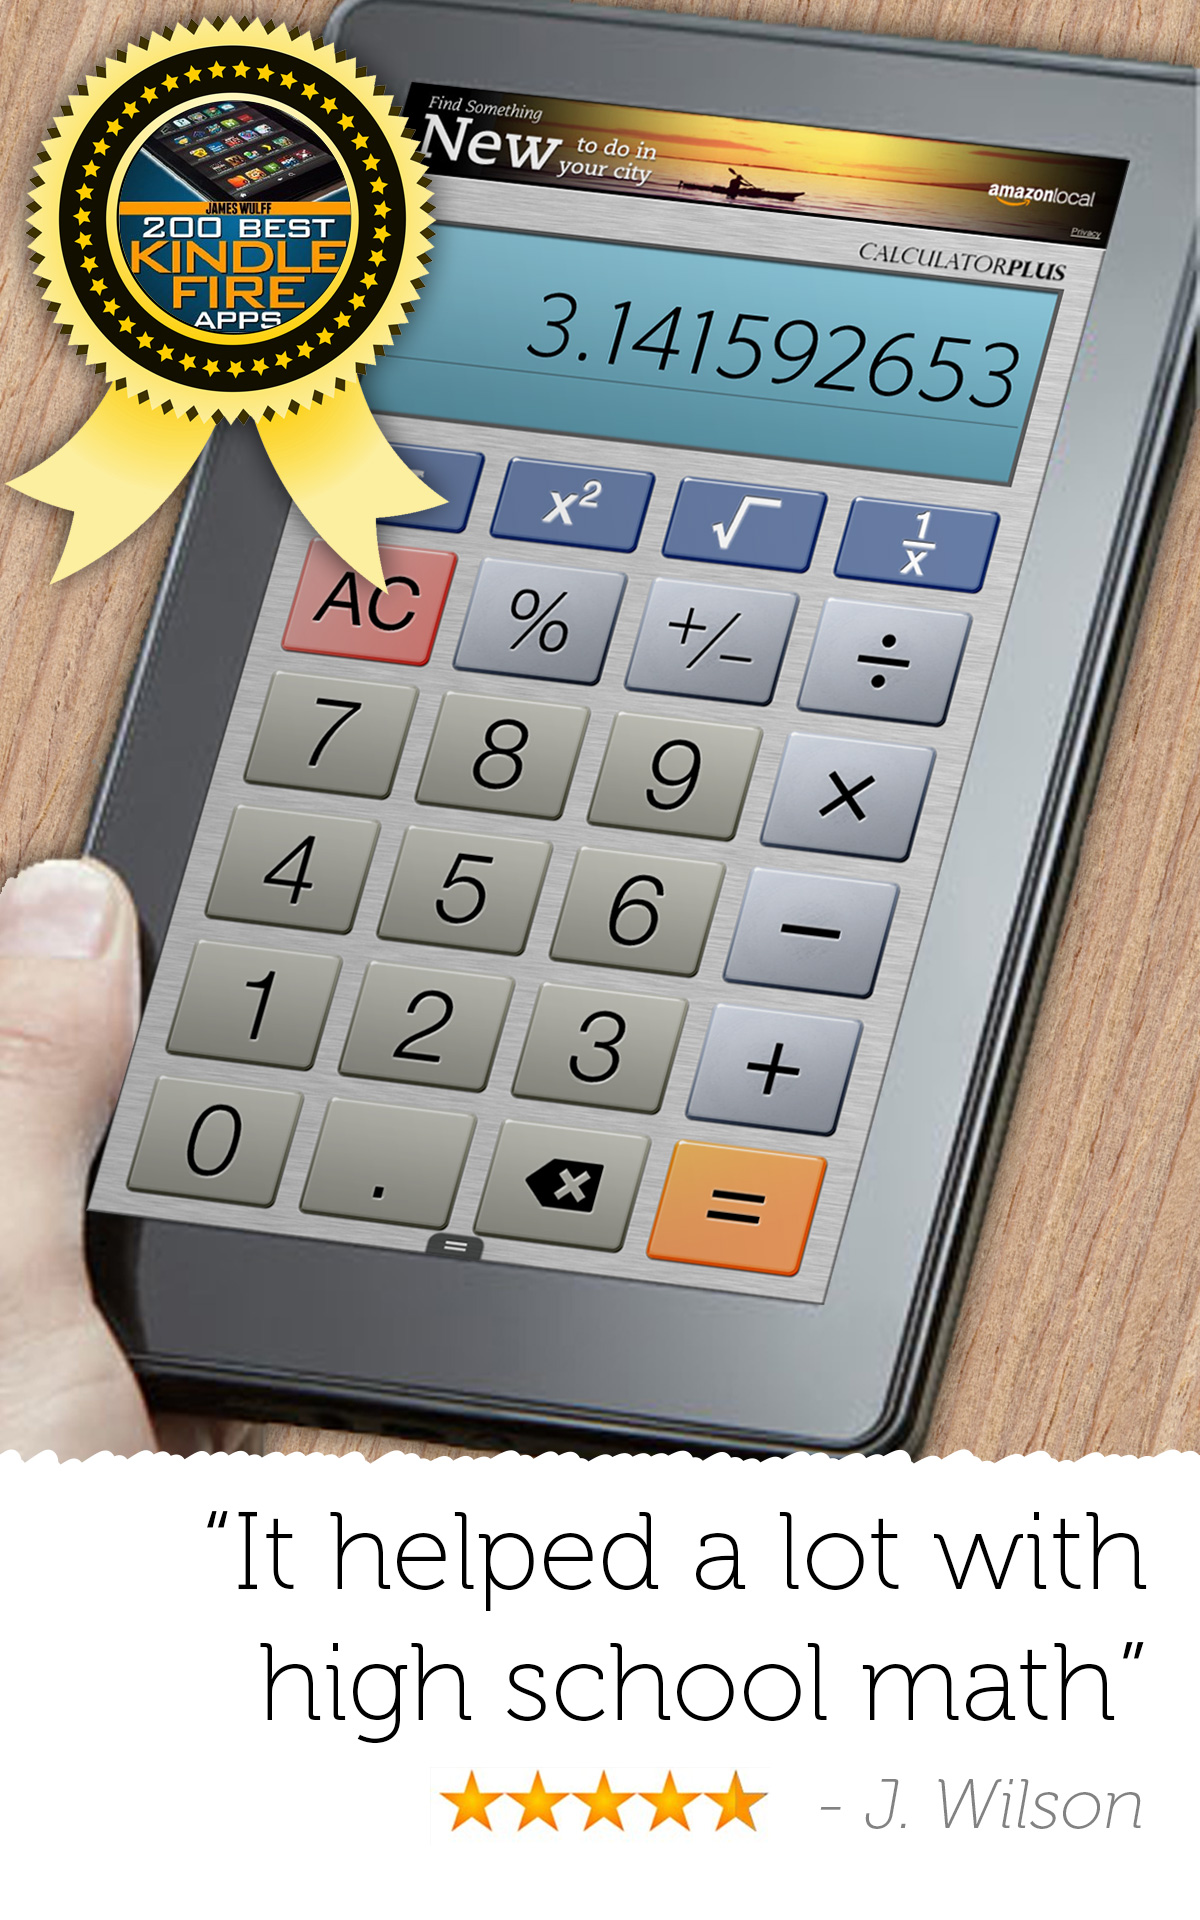 Amazon.com: Calculator Plus Free: Appstore for Android